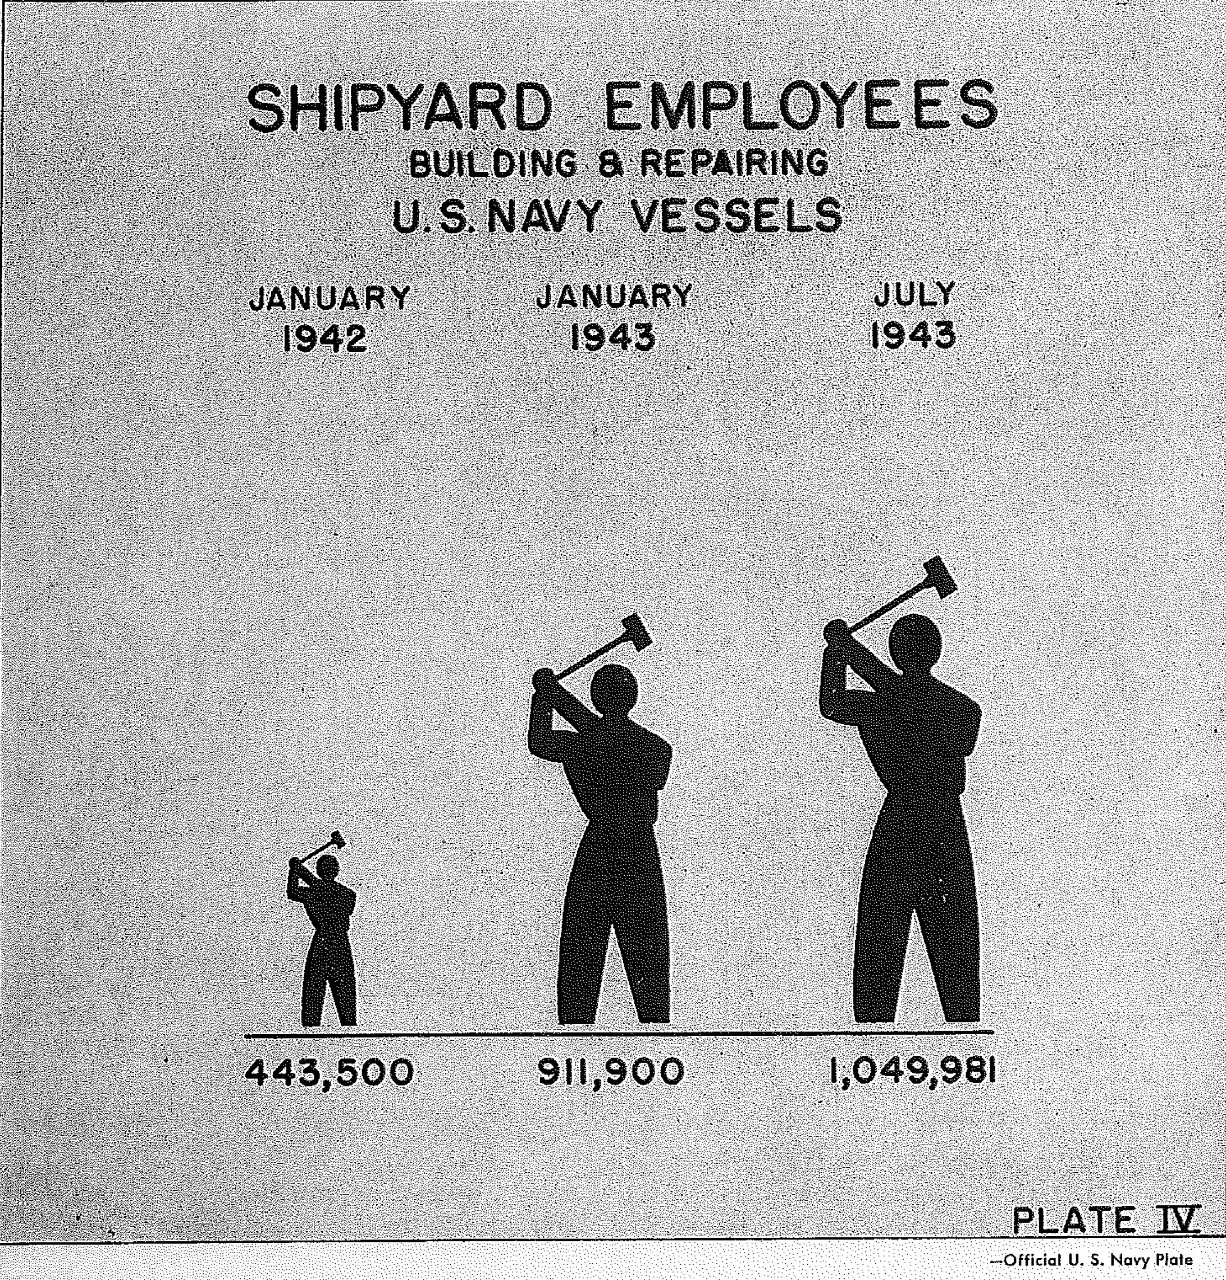 <p>Shipyard Employeed Building &amp; Repairing U.S. Navy Vessels, Plate IV&nbsp;</p>